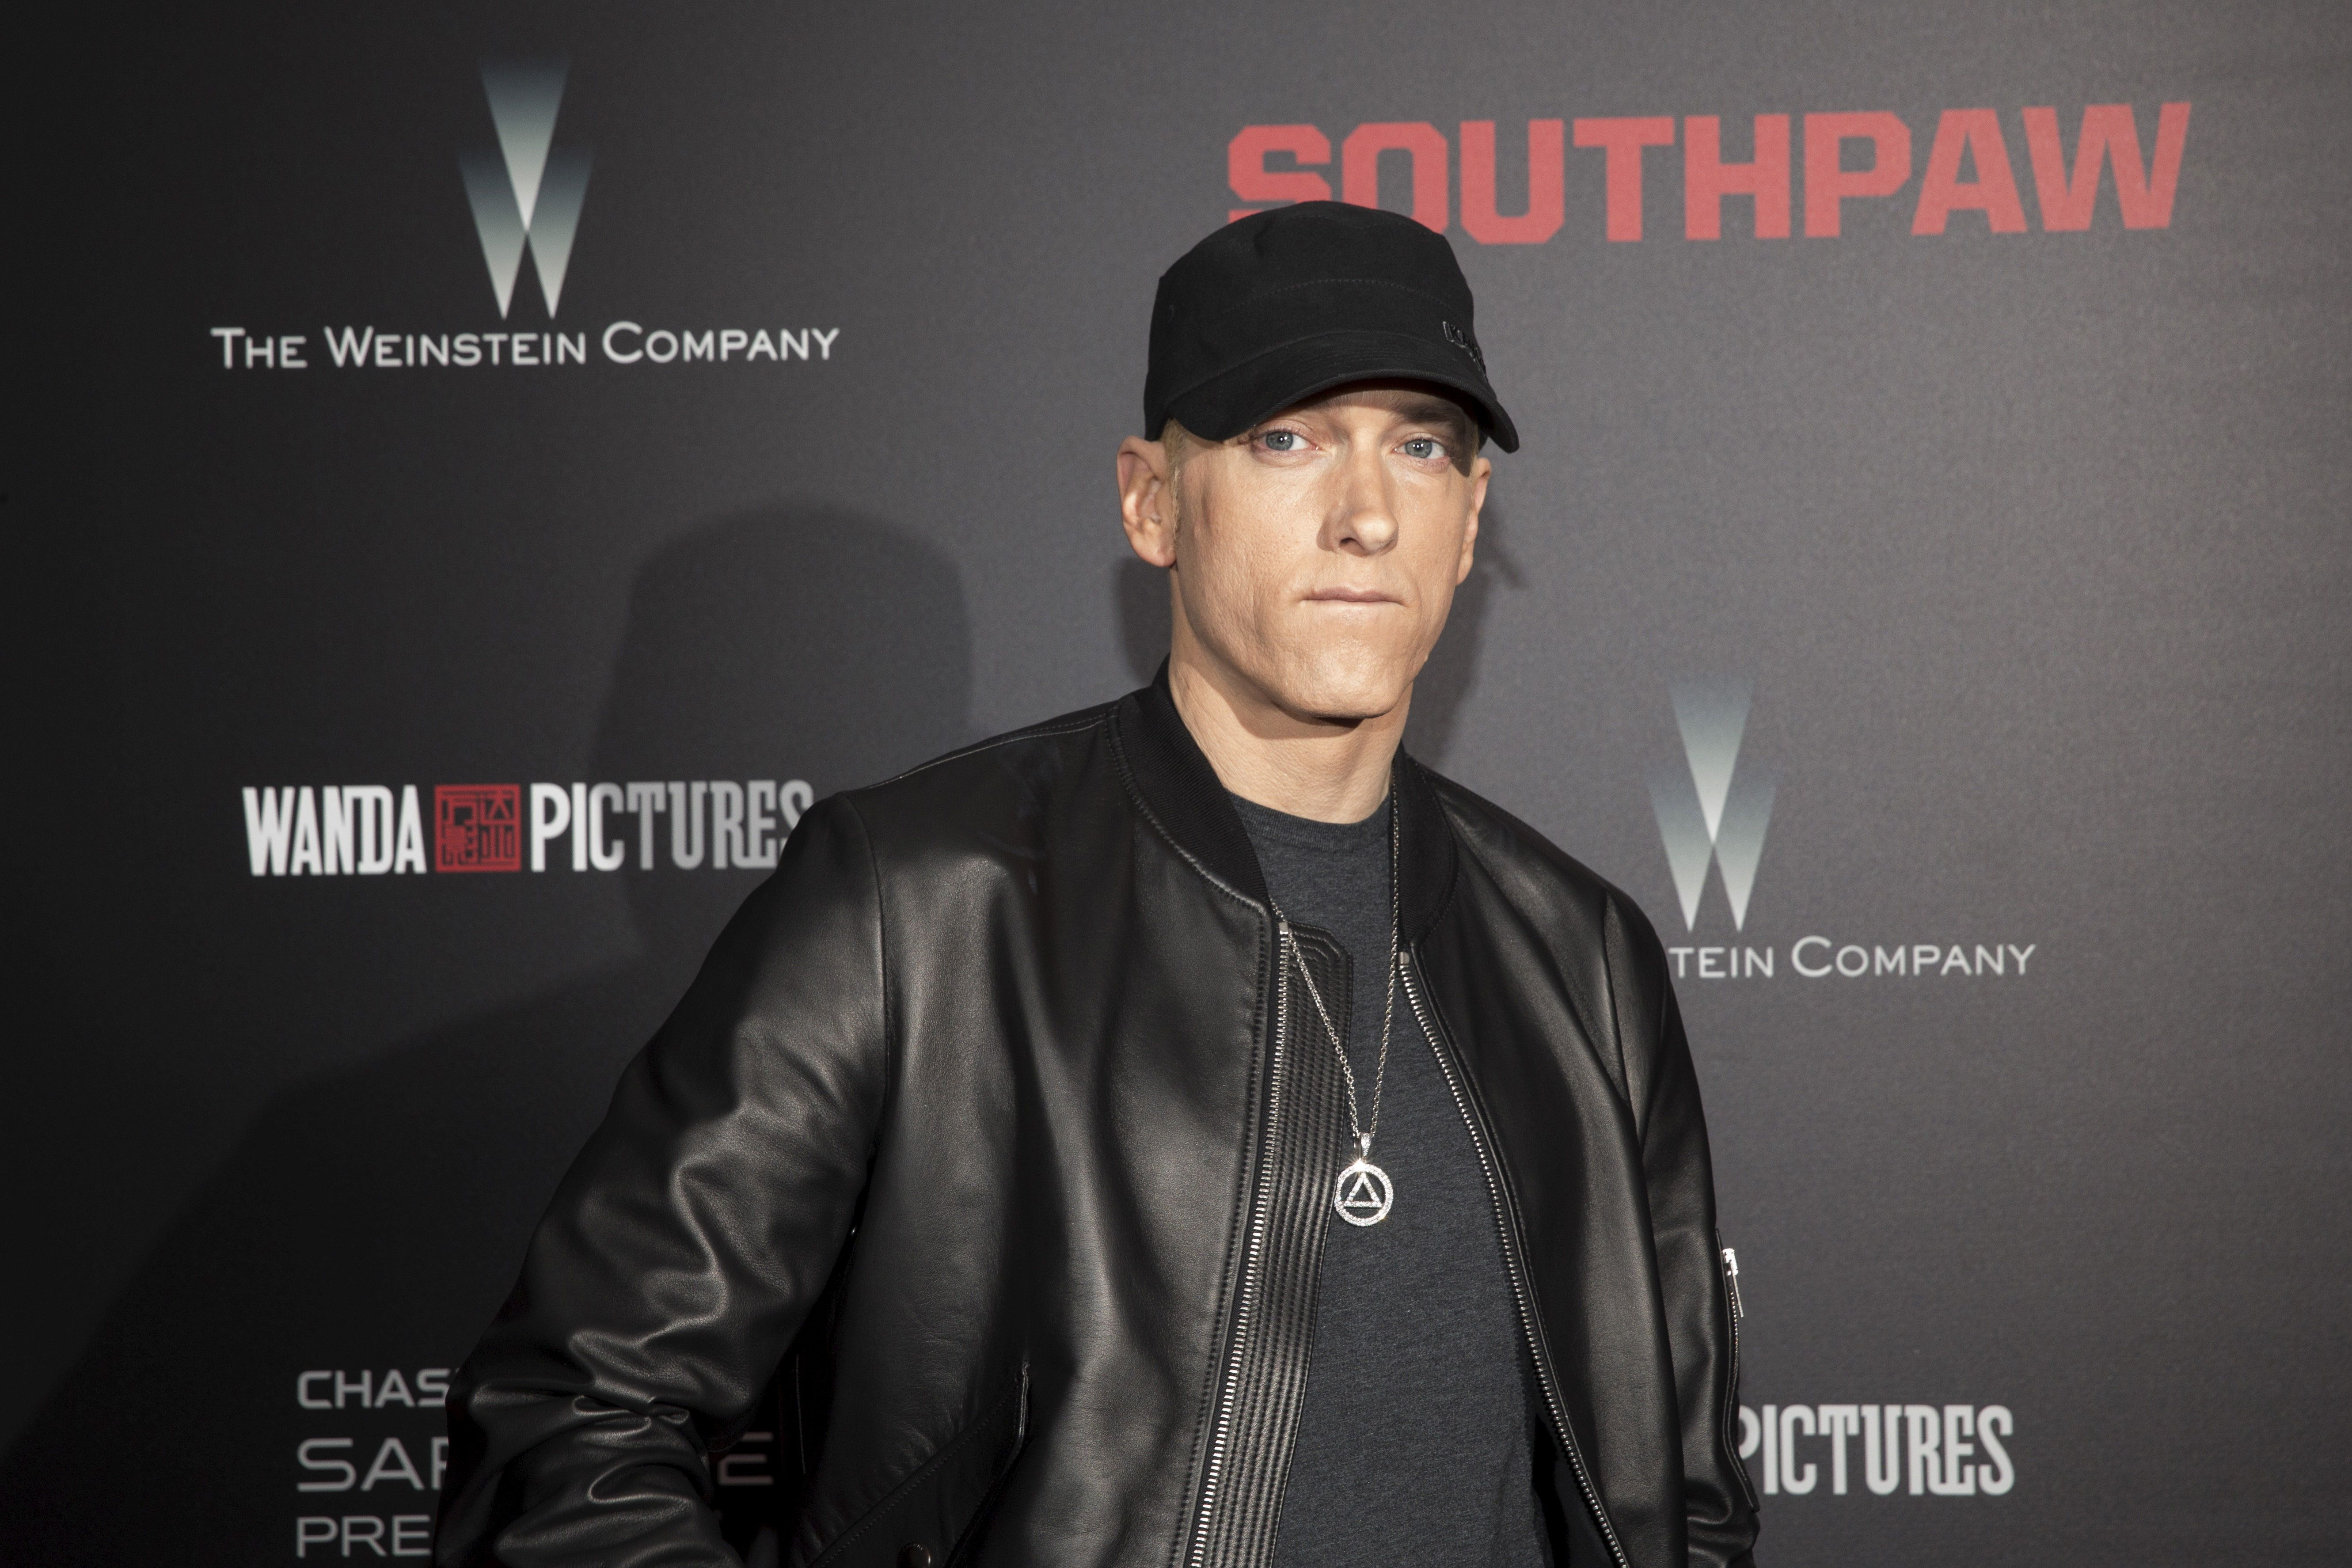 Eminem, 45, has been accused of channeling homophobia and misogynyin his music and performances.